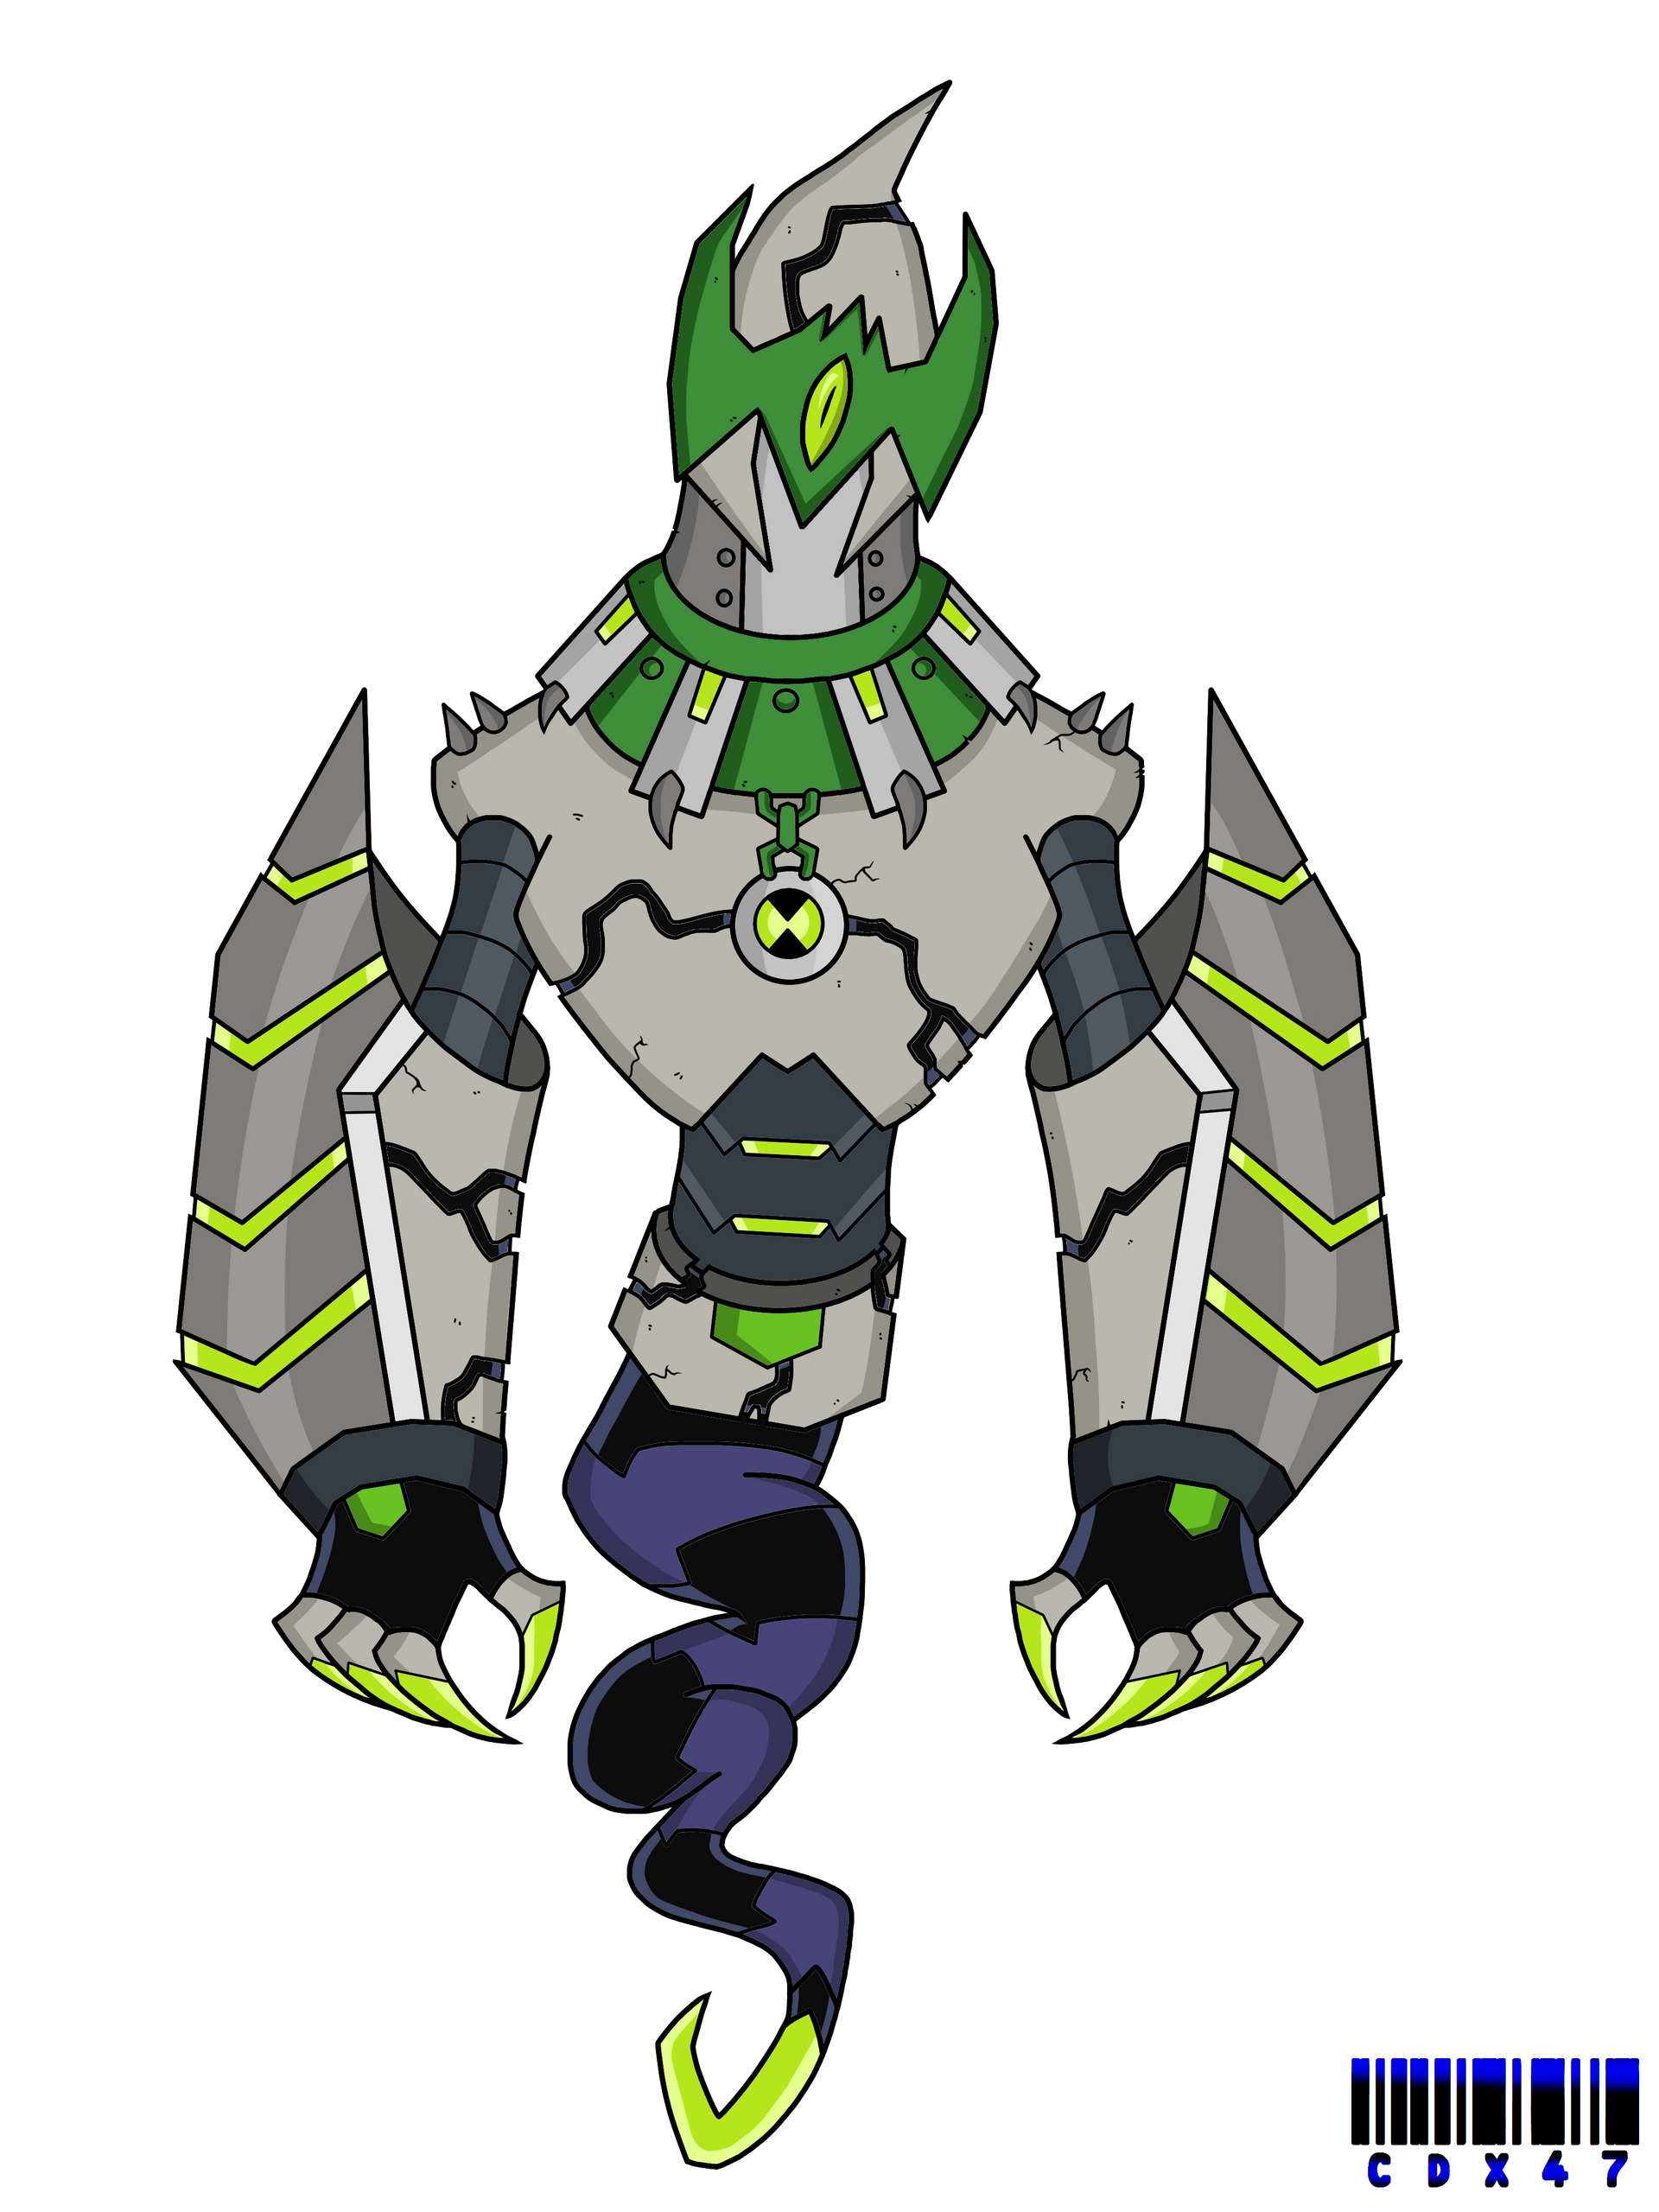 Omni Kix Ghostfreak By Xxcodex47xx On Deviantart Ben 10 Ben 10 Alien Force Ben 10 Omniverse